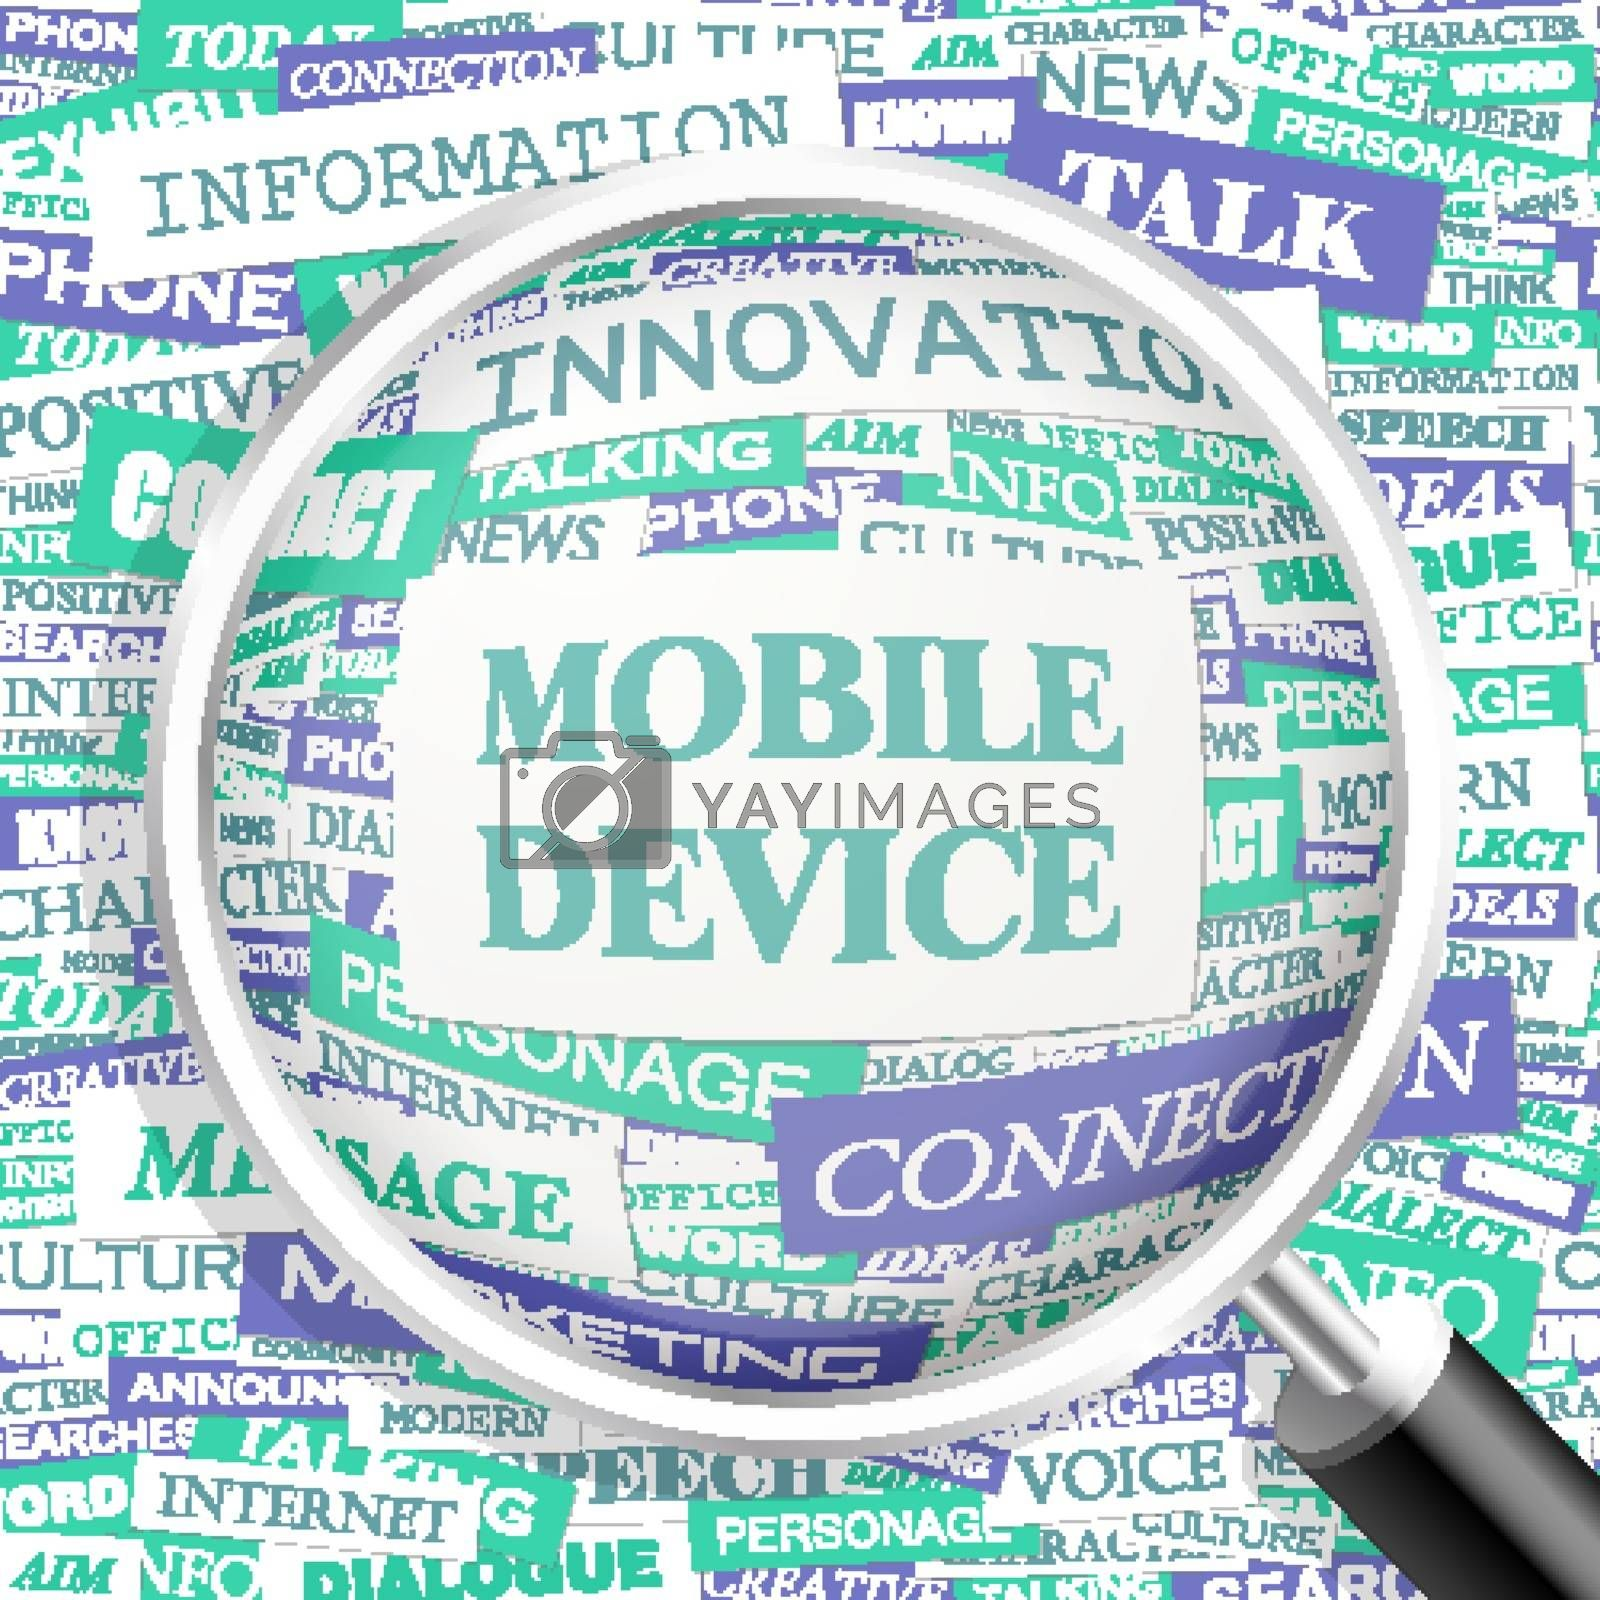 MOBILE DEVICE. Word cloud illustration. Tag cloud concept collage.